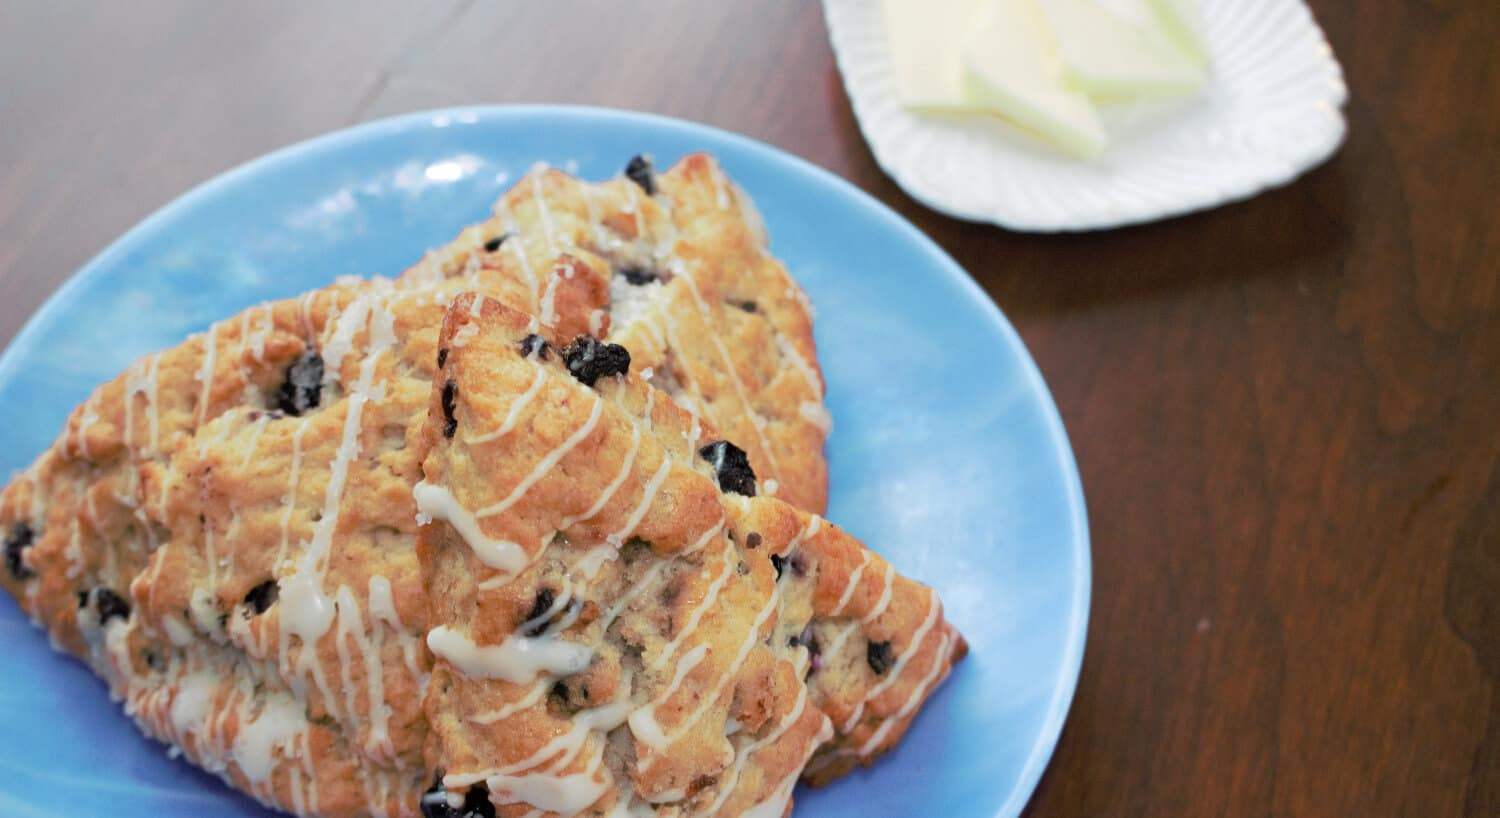 Currant-studded pastries with icing on a blue plate